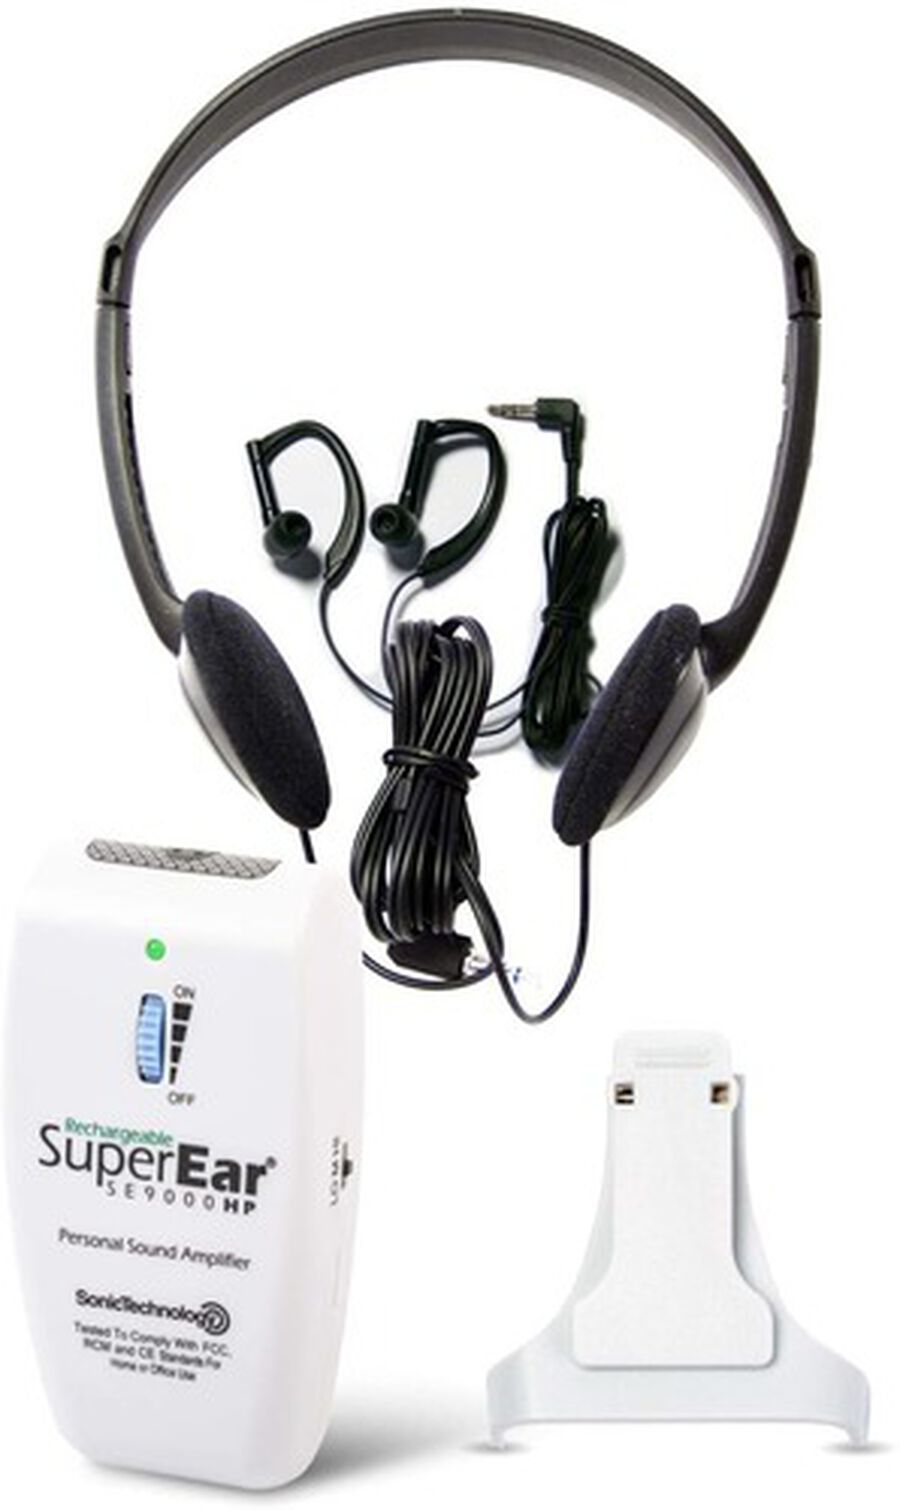 SuperEar SE9000HP Deluxe Rechargeable Personal Sound Amplifier, , large image number 0